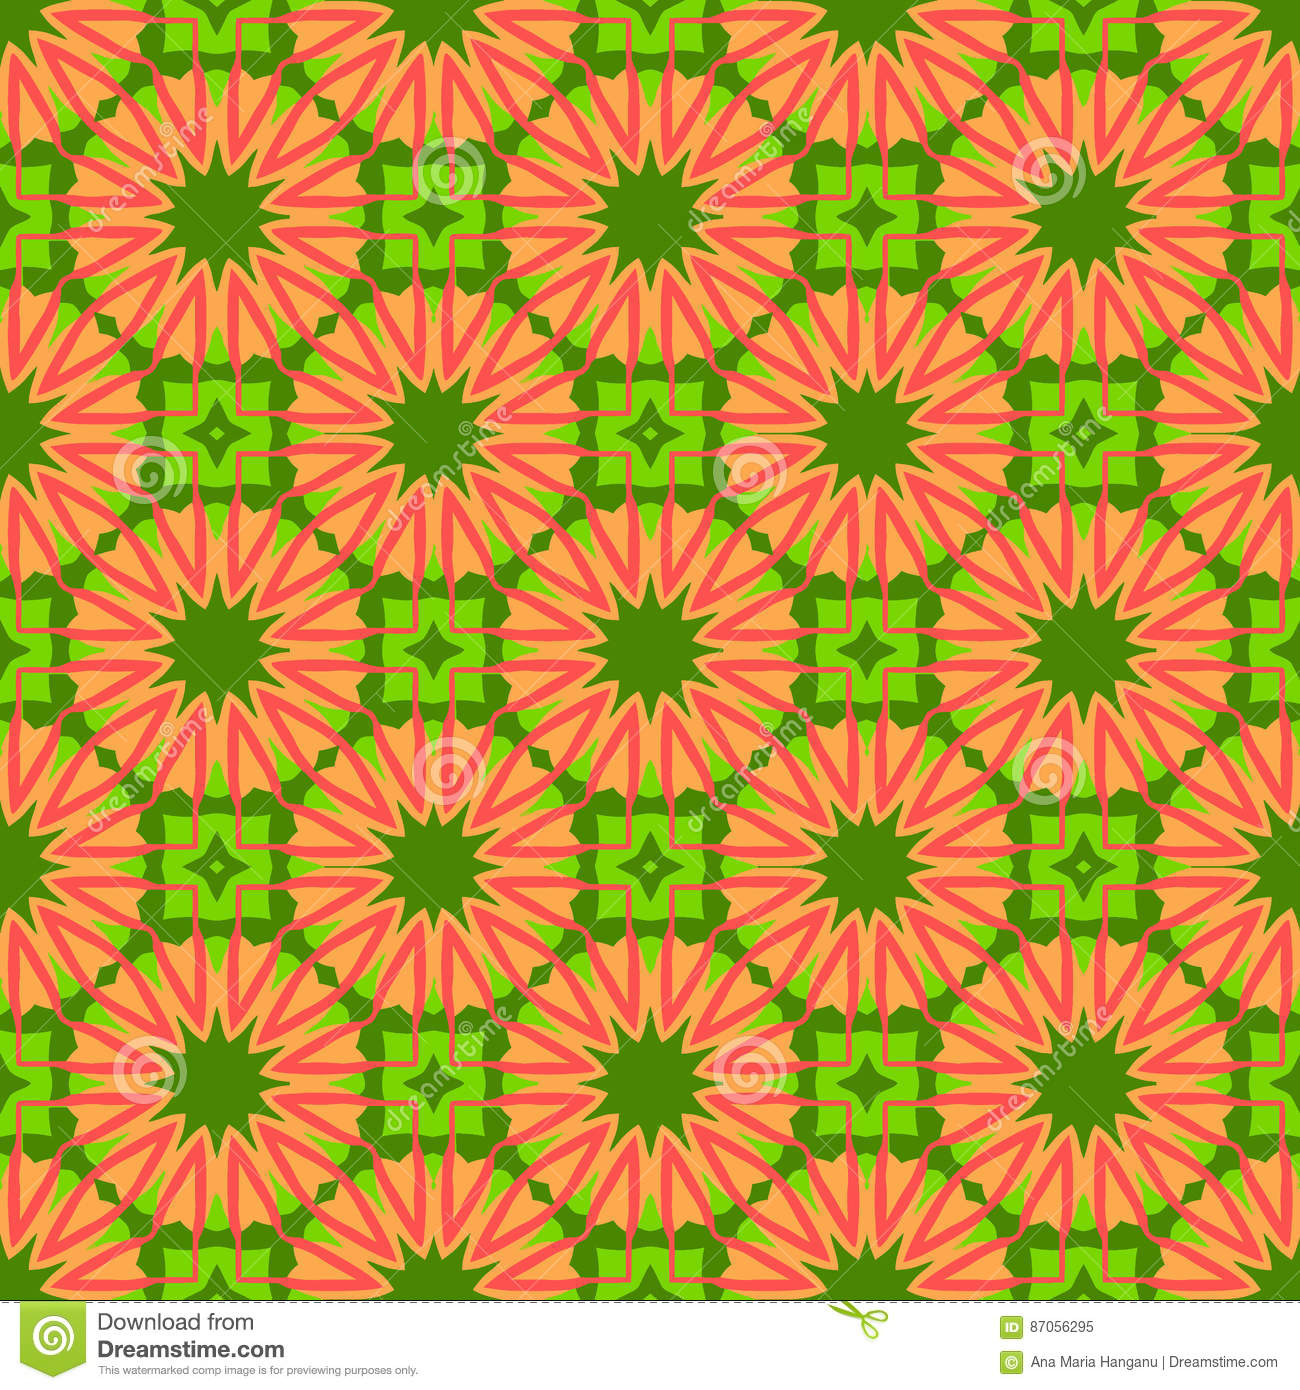 Geometric Floral Wallpaper.Tiles Moti, Digital Paper For